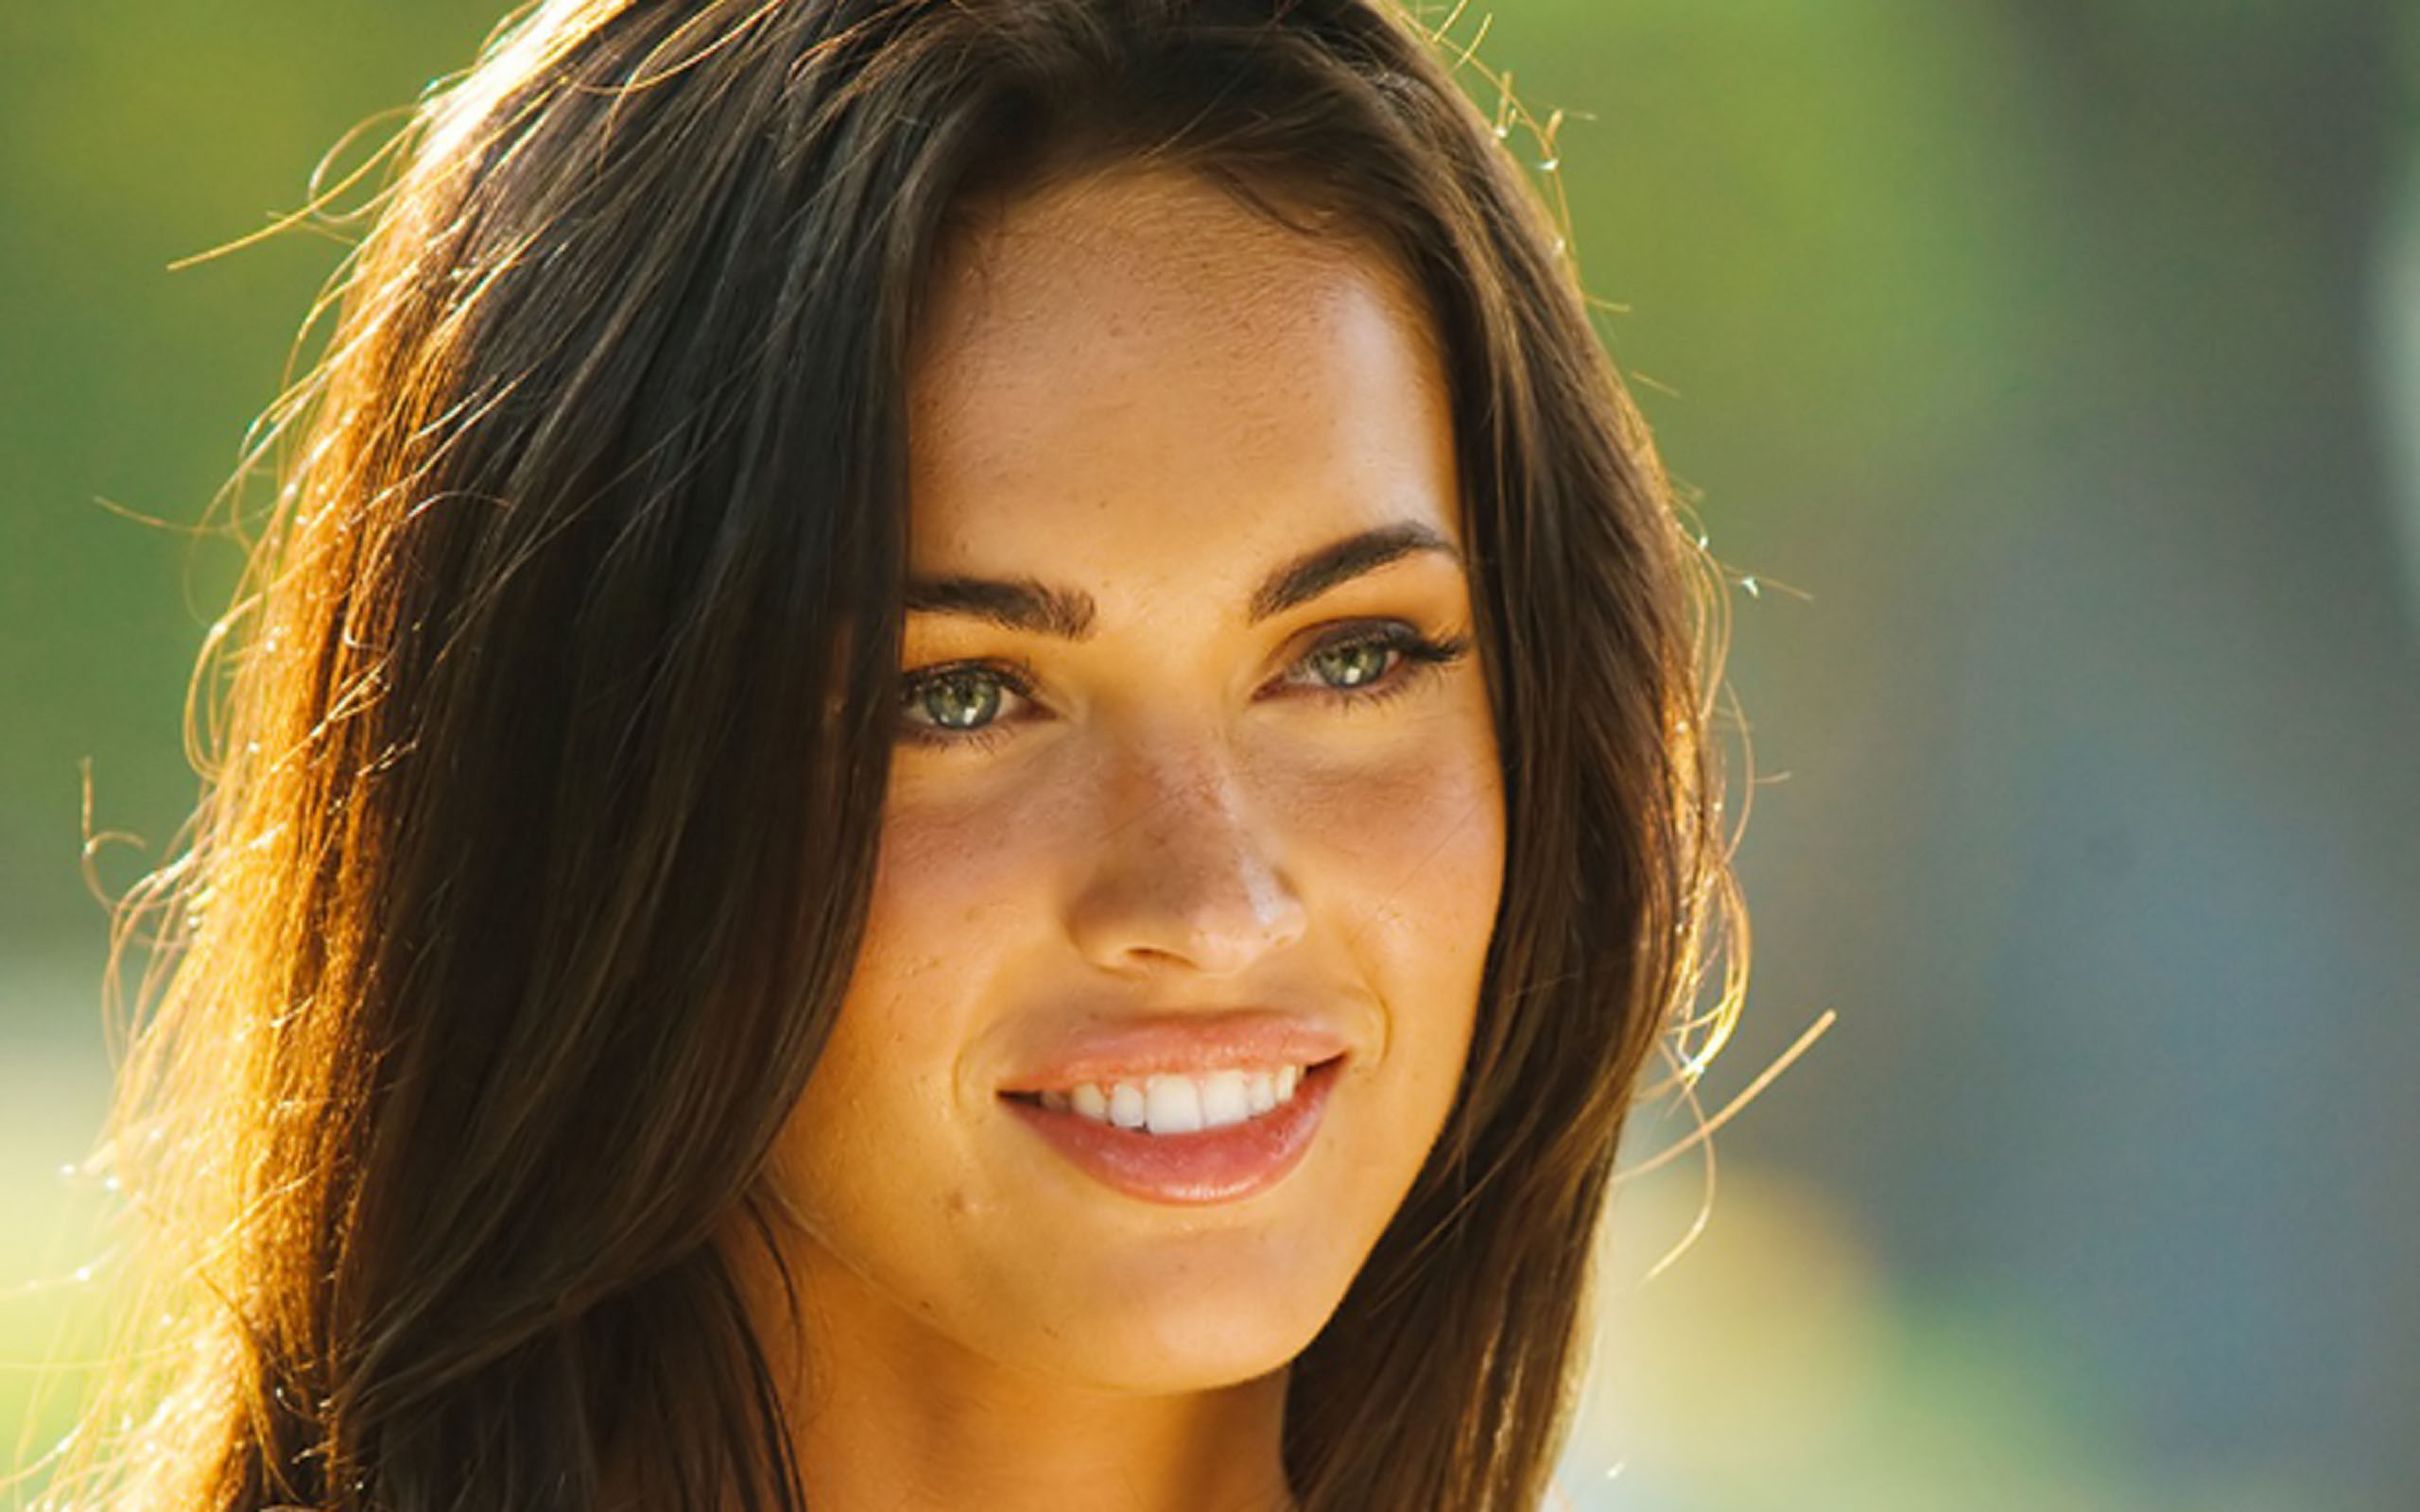 Cute Megan Fox wallpaper | 2560x1600 | #19162